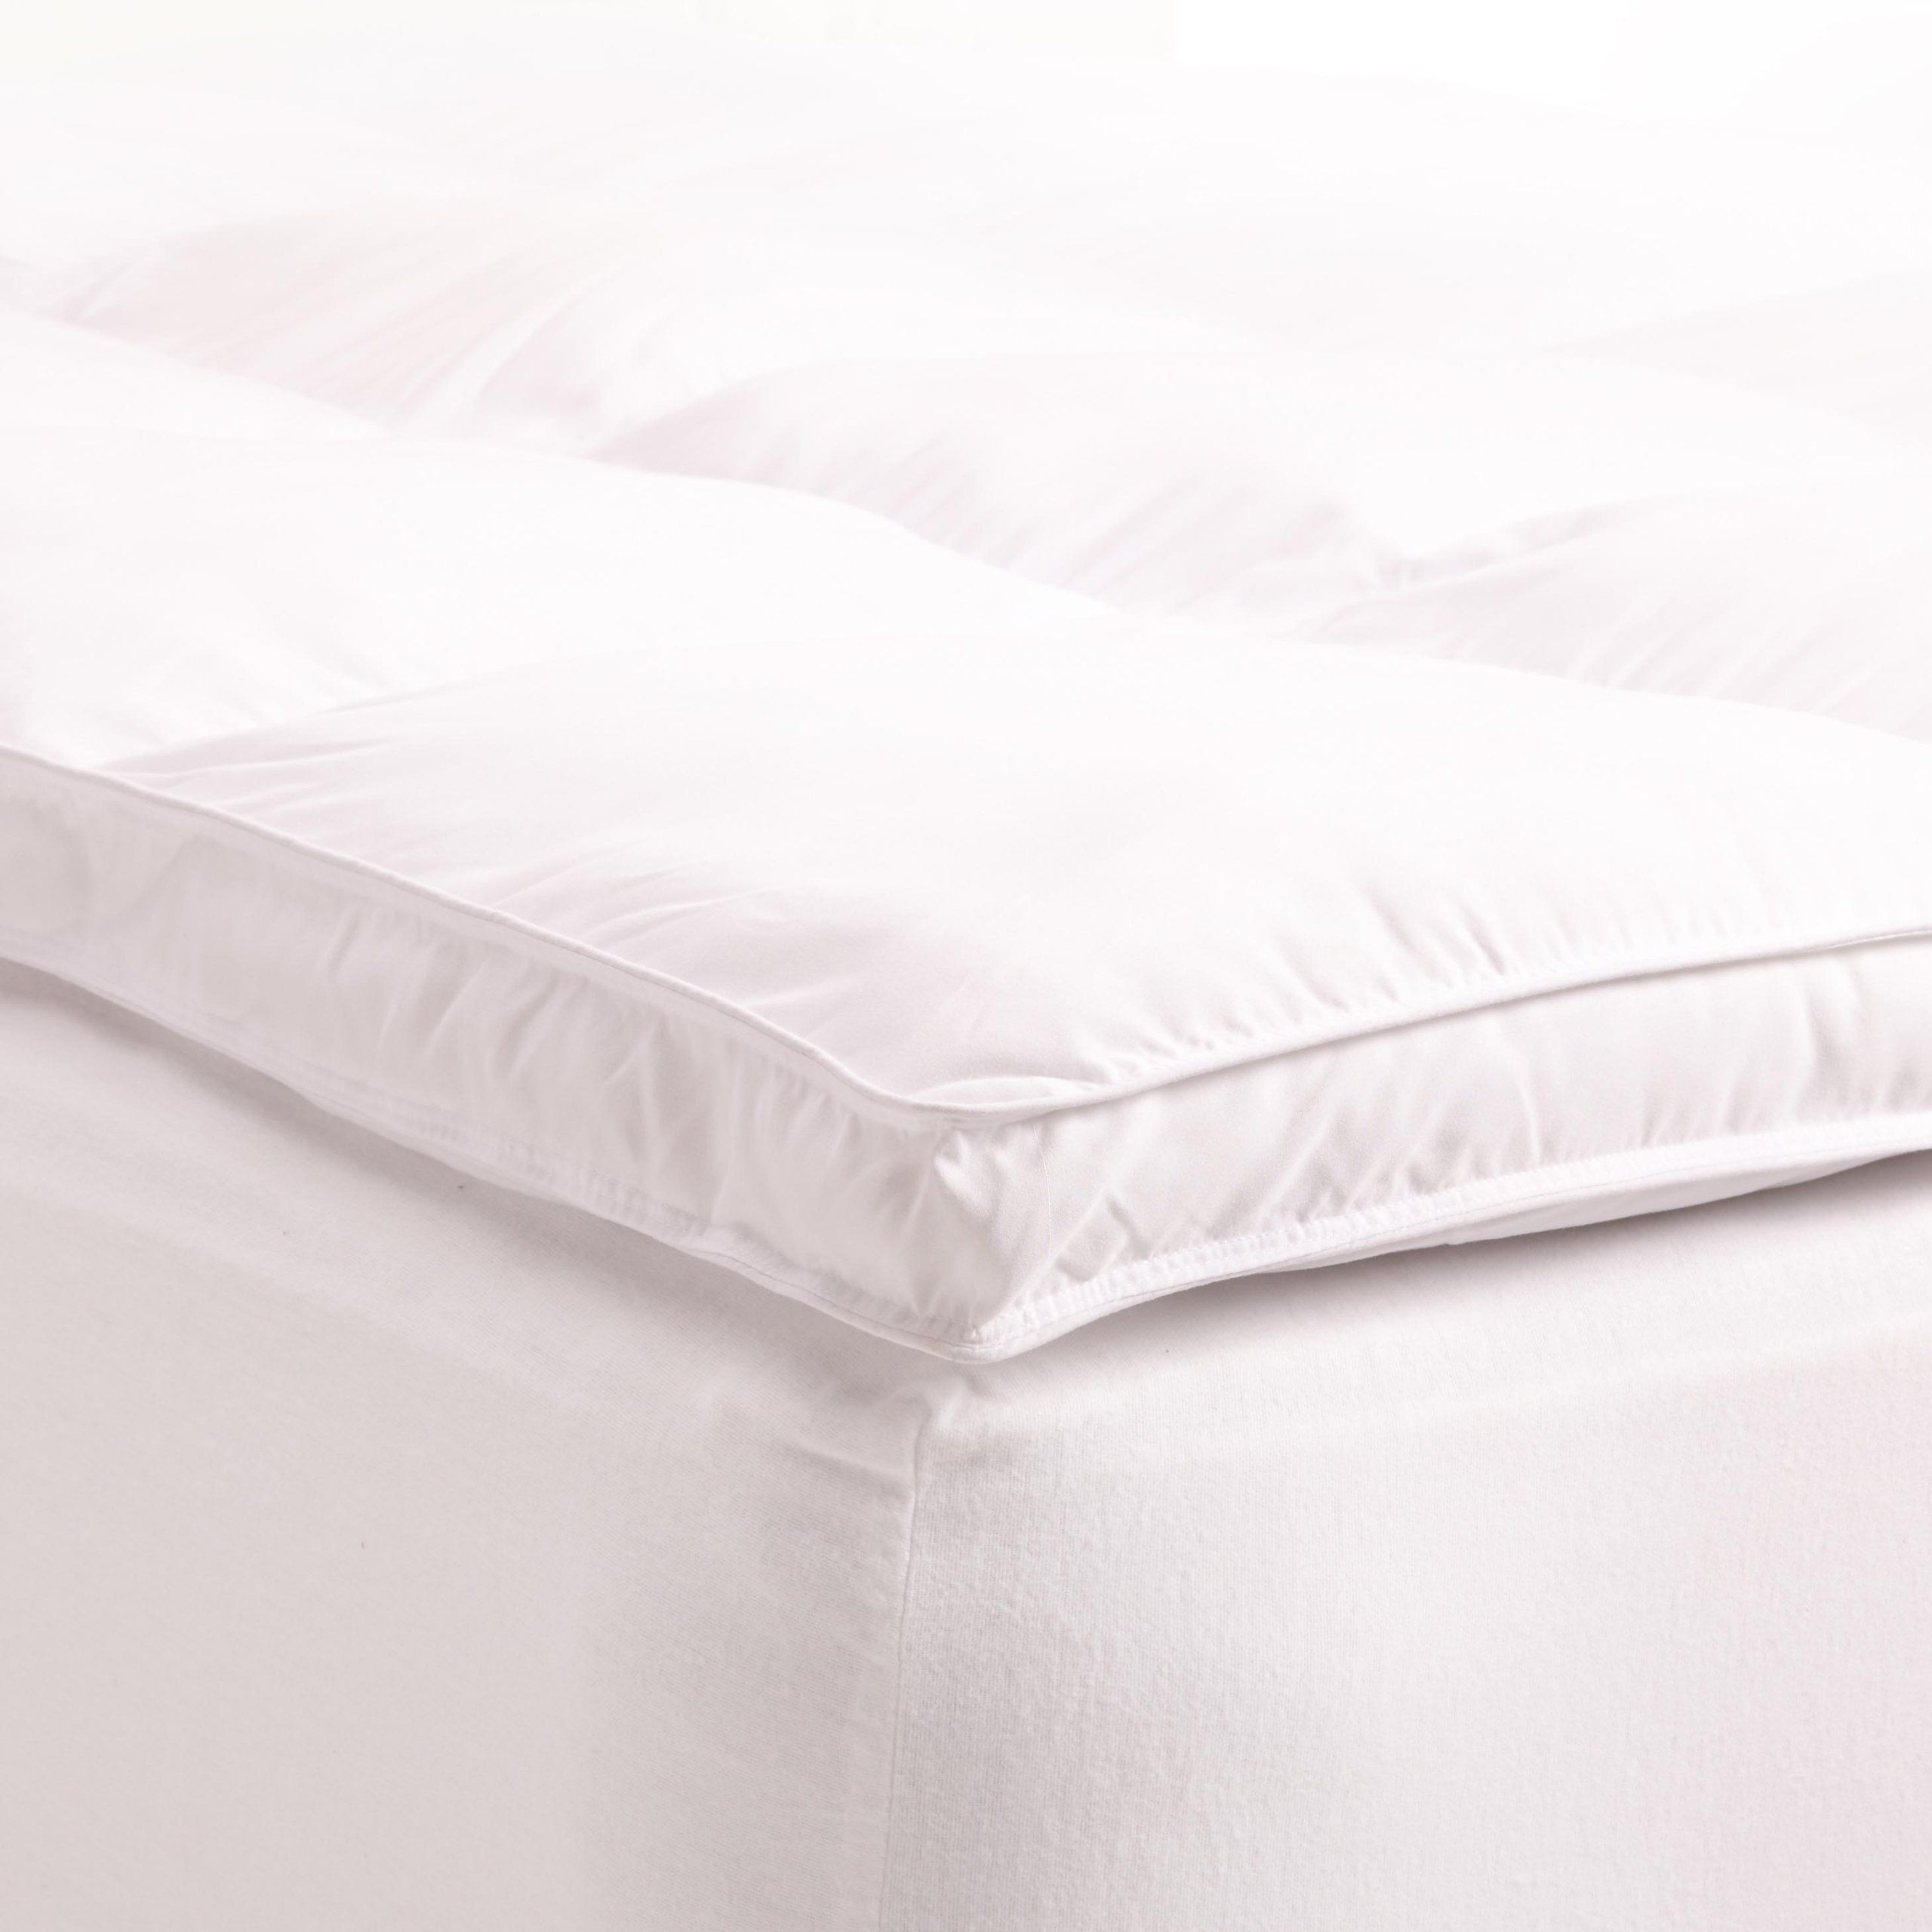 Twin 2 H Home Sweet Home Dreams Hypoallergenic Down Alternative Bed Mattress Topper